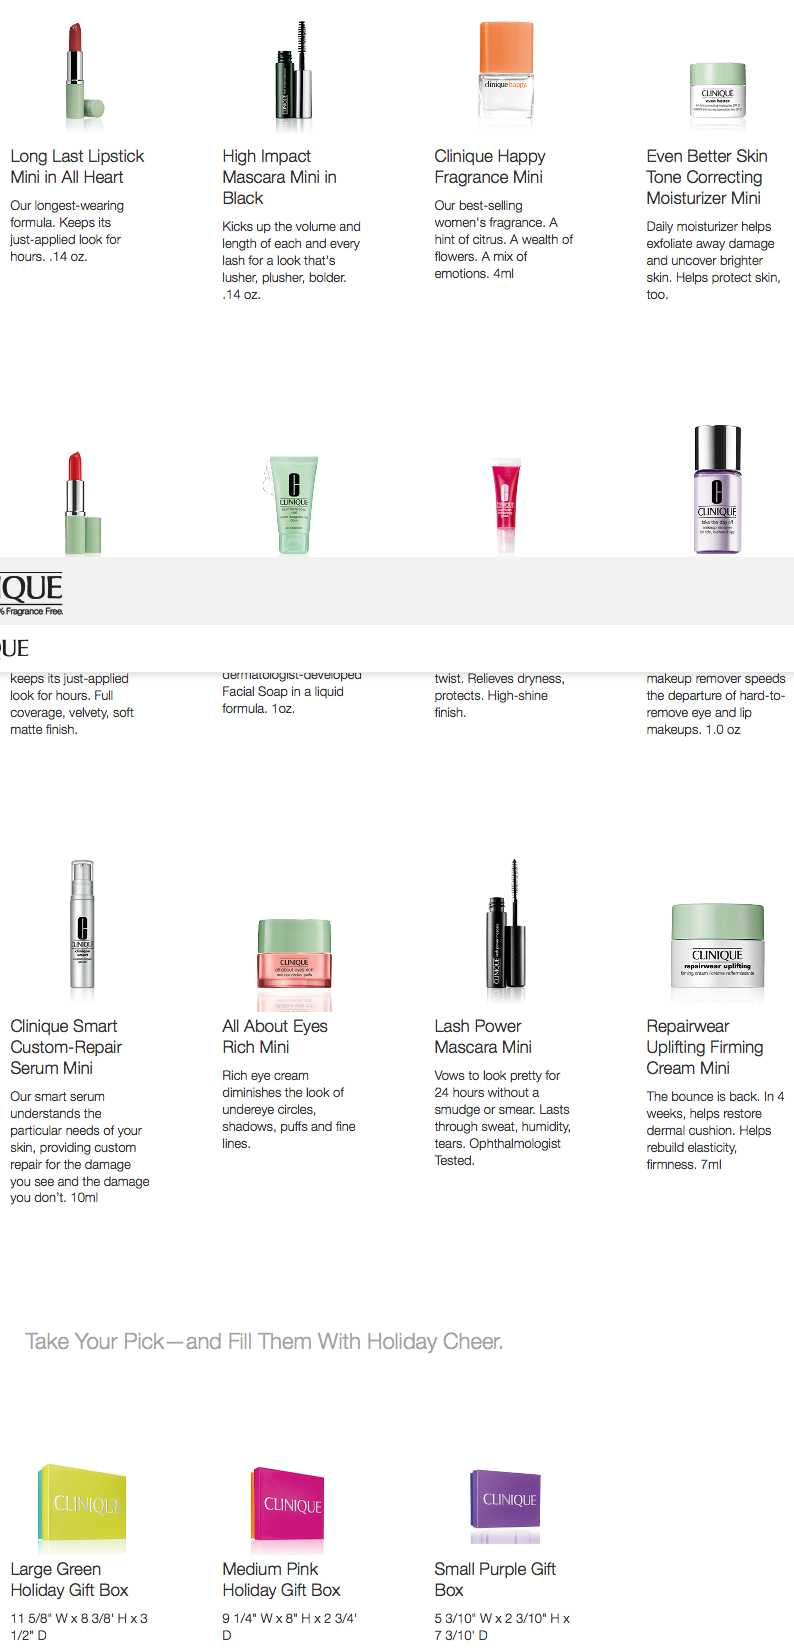 Clinique-gift-with-purchase.jpg - Gift With Purchase